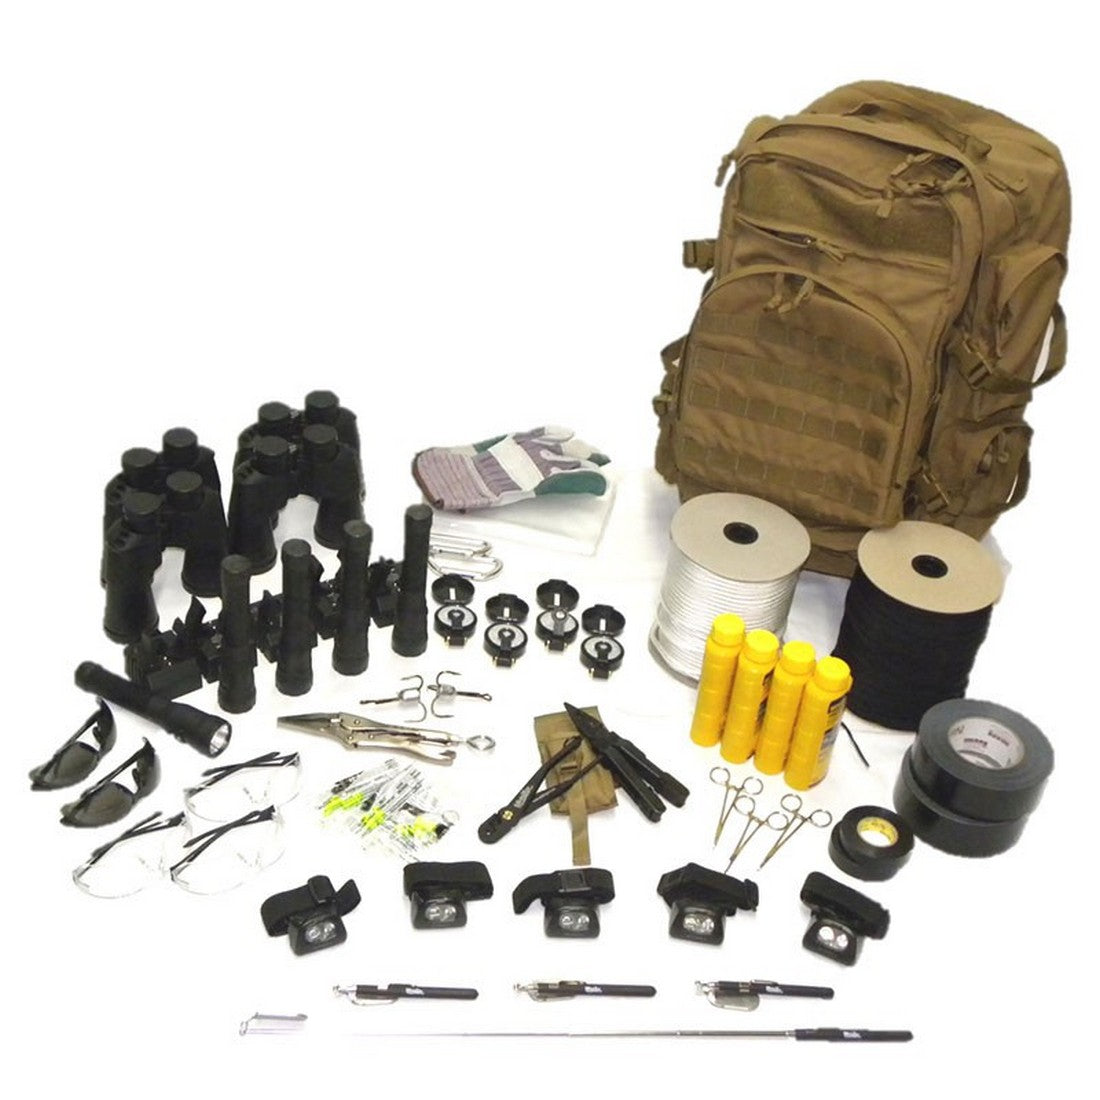 Mithix Pro Explosive Hazard Reduction Kit